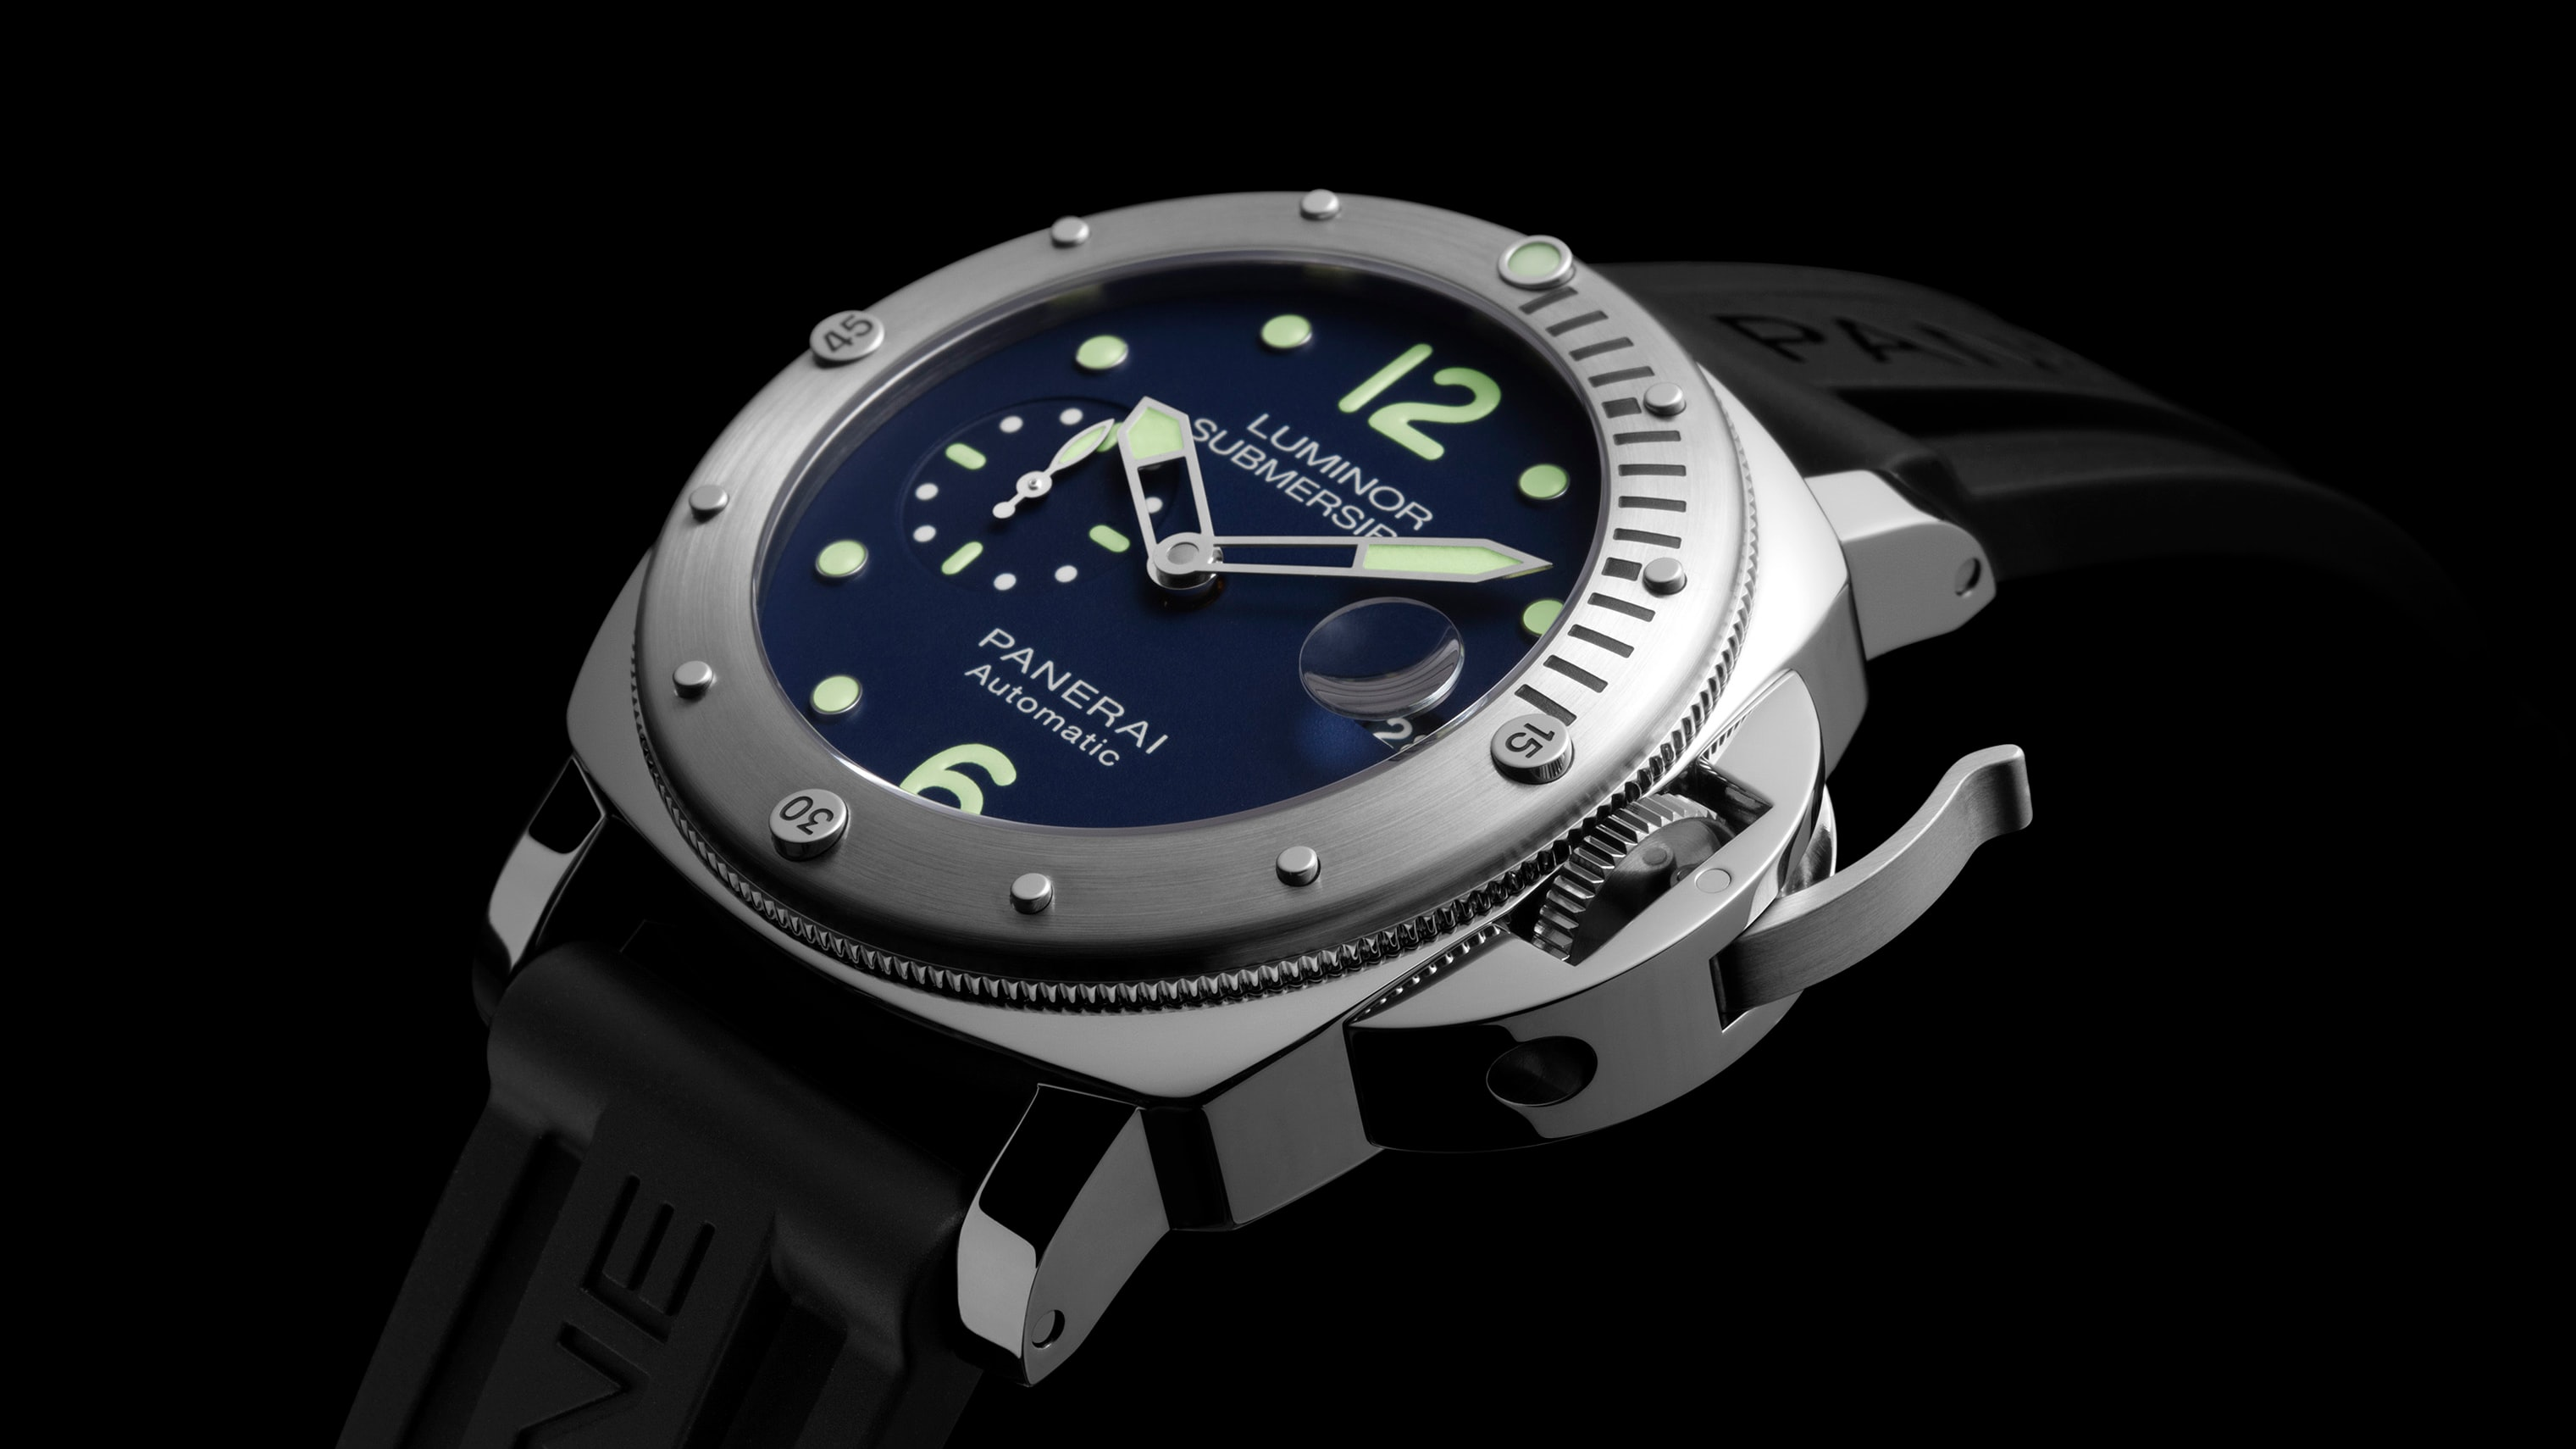 Hero2.jpg?ixlib=rails 1.1 Introducing: The Panerai Limited Edition Luminor Submersible Acciaio PAM00731, An E-Boutique Limited Edition Introducing: The Panerai Limited Edition Luminor Submersible Acciaio PAM00731, An E-Boutique Limited Edition hero2